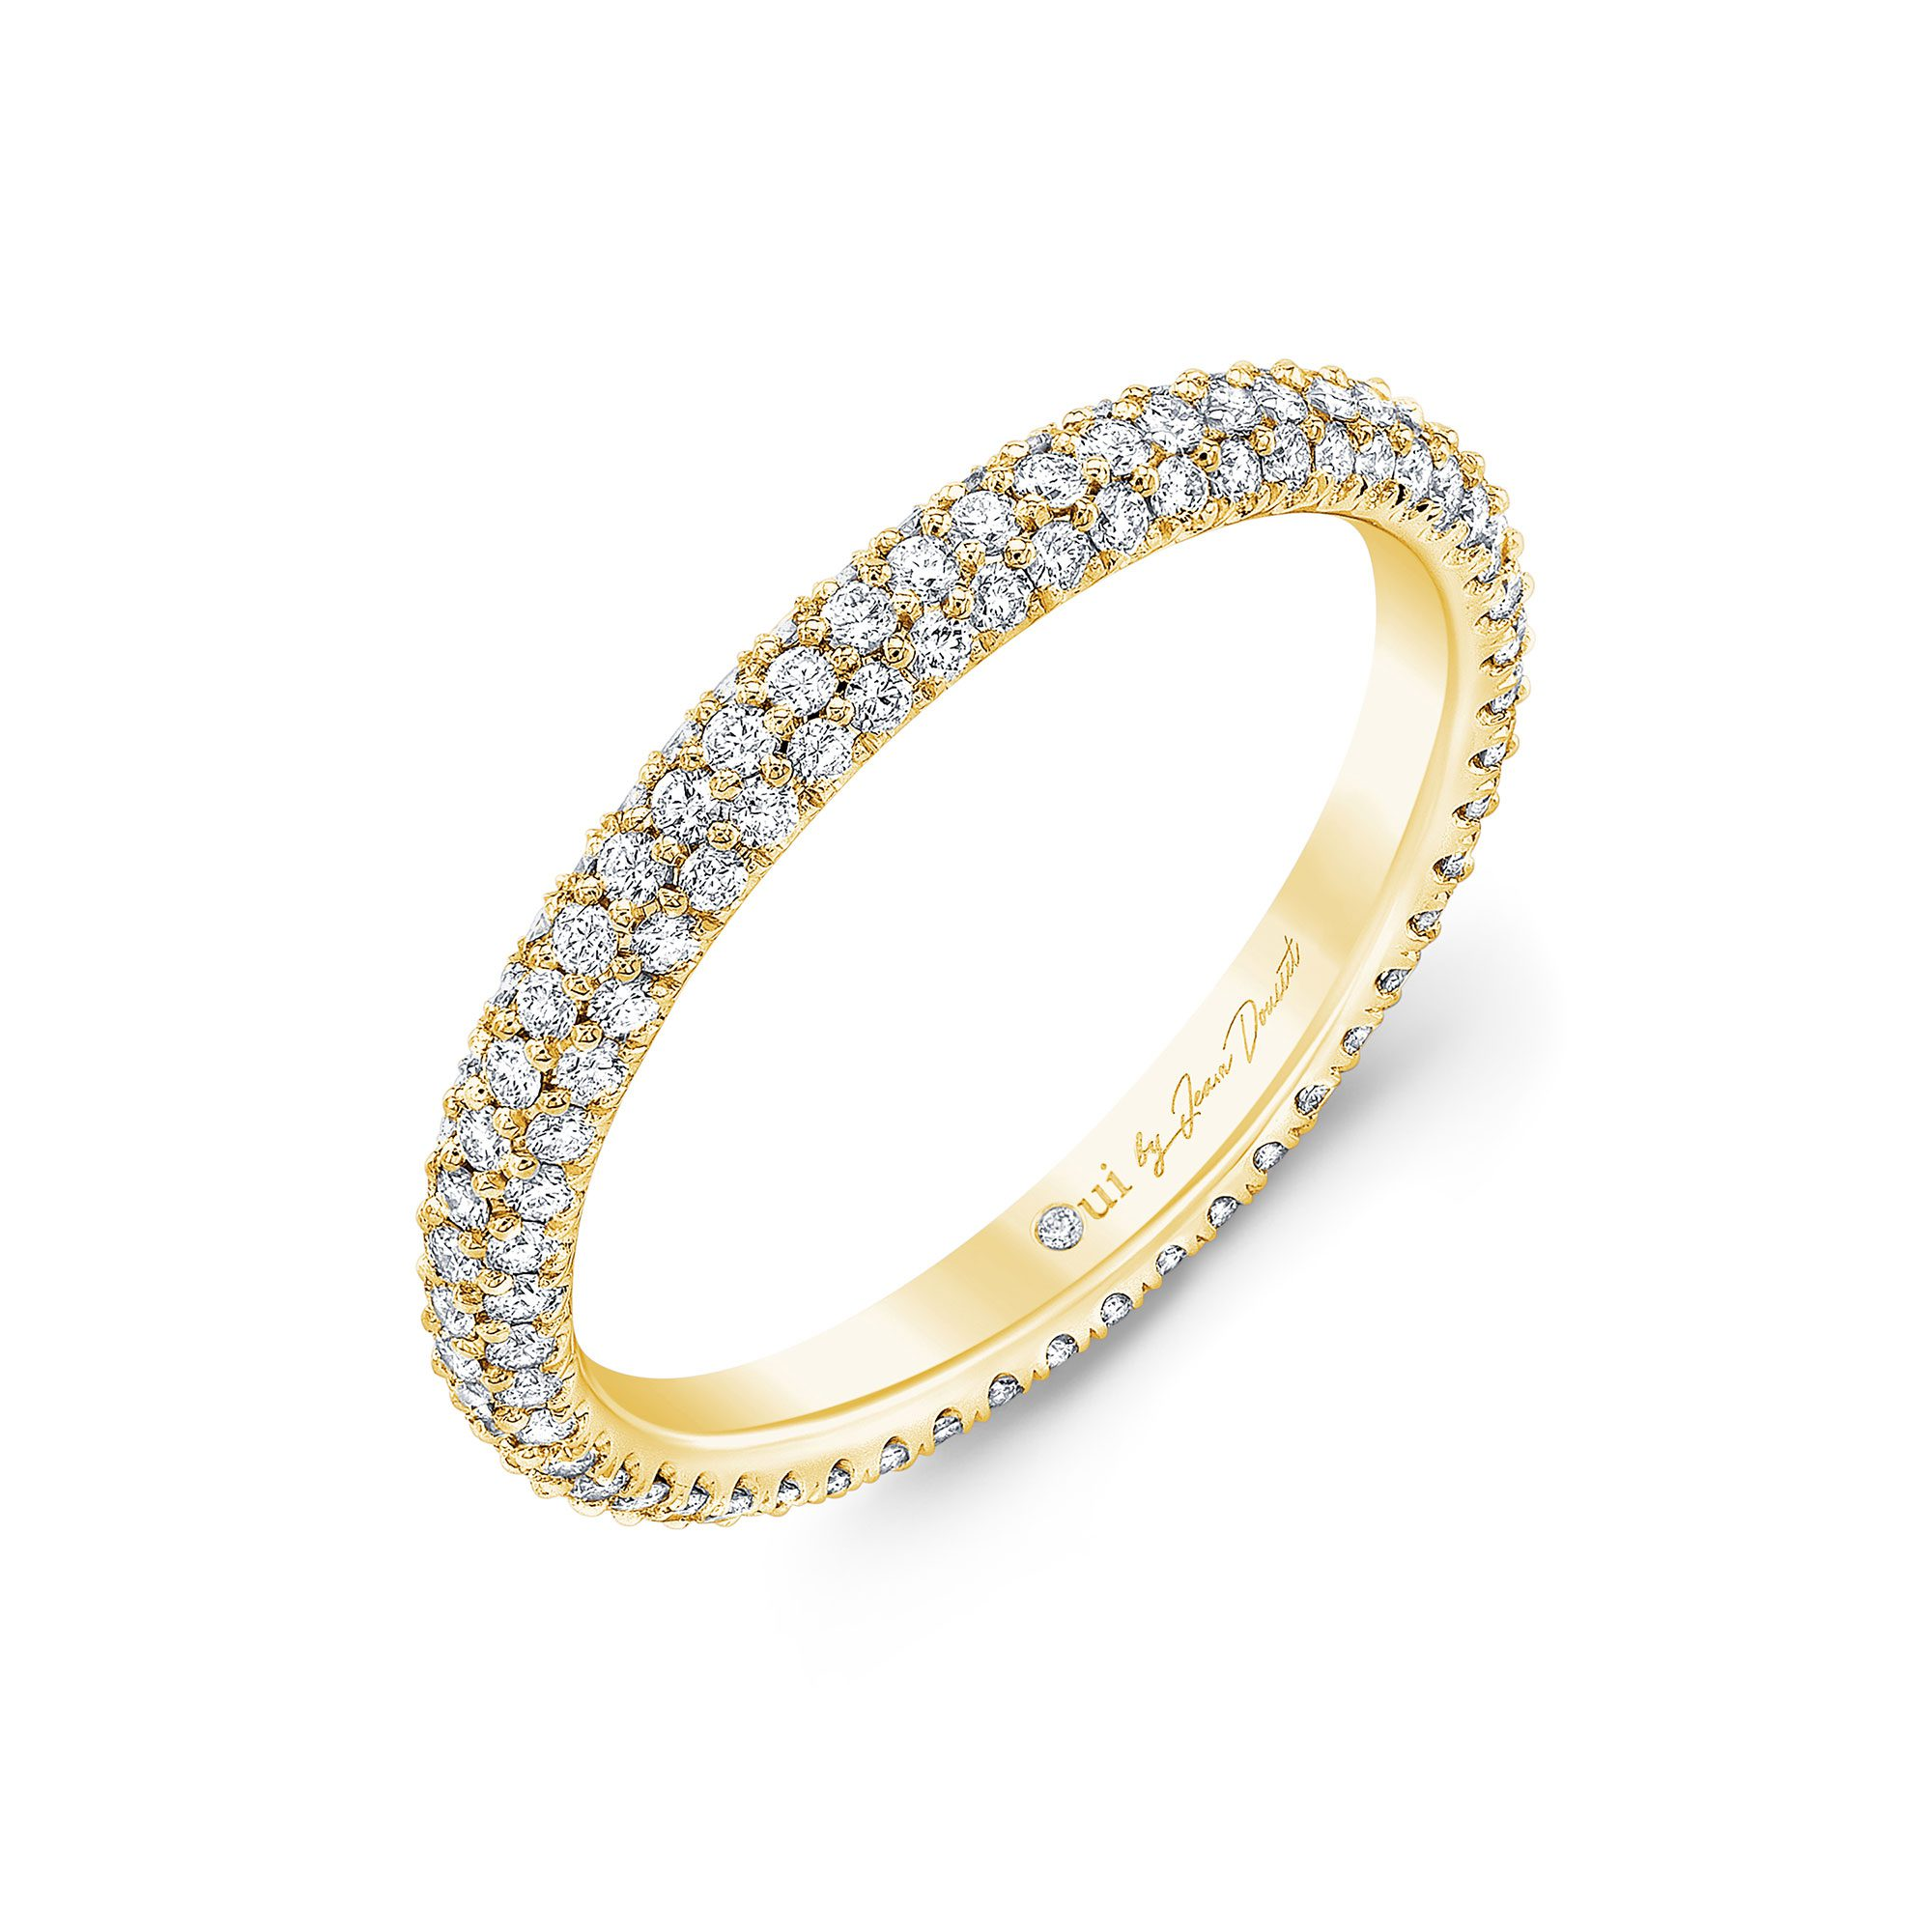 Jacqueline Eternity Band 18k Yellow Gold Side View by Oui by Jean Dousset